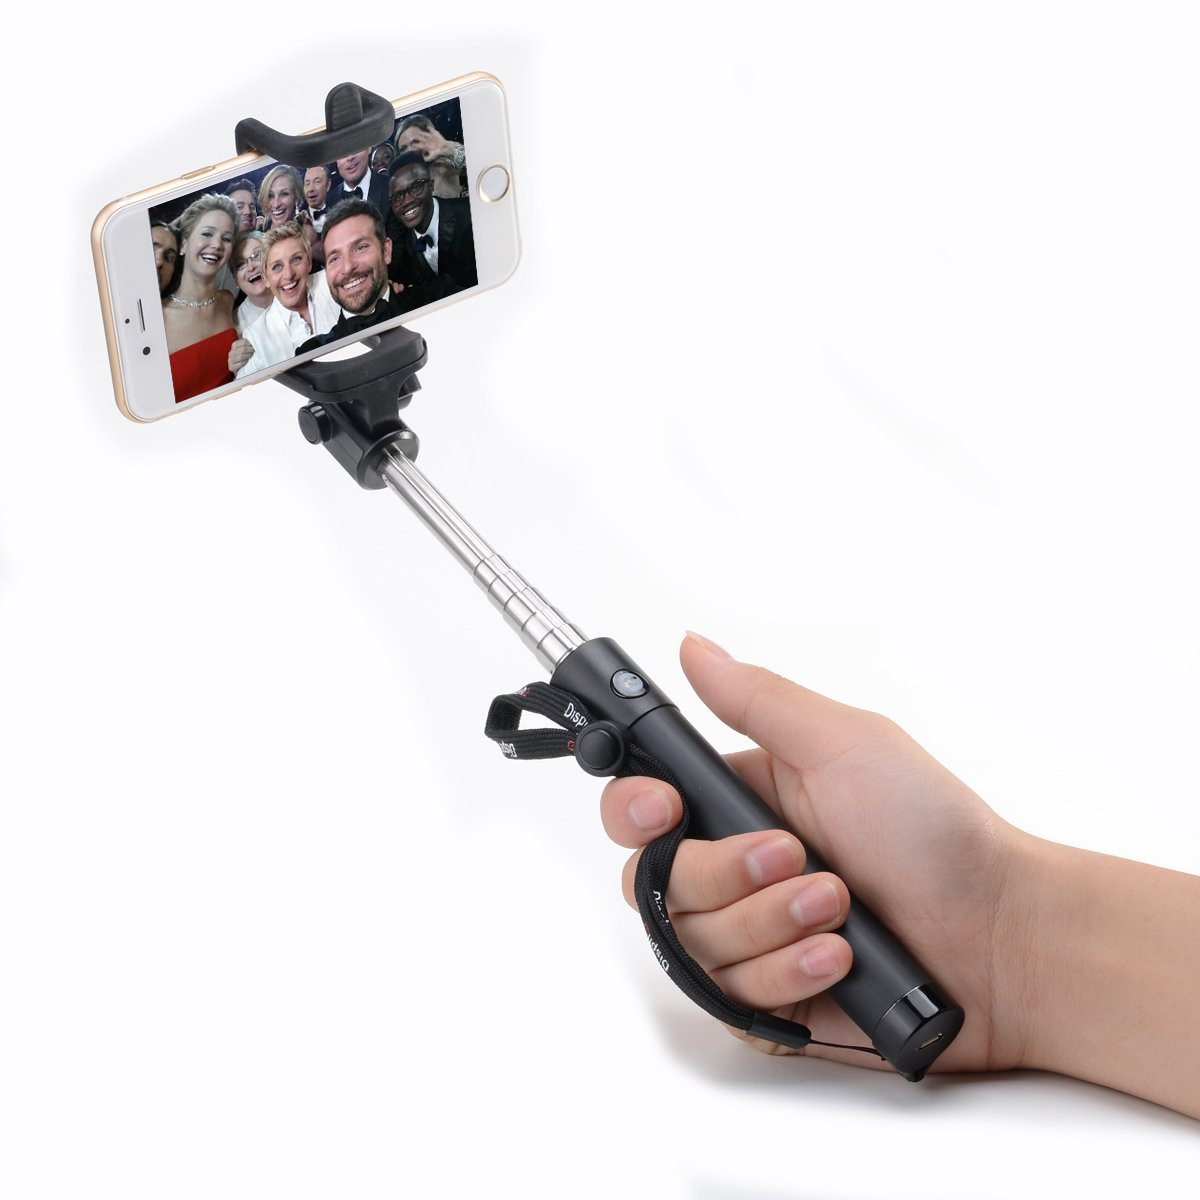 Selfie Stick - Disph® Extendable Pole Bluetooth Self Shooting Monopod - Best Selfie Sticks on Amazon - Universal for Taking Self Portrait Selfy Shots on Iphone 6, Samsung Galaxy ,Android and All Other Bluetooth Enabled Devices selfie sticks